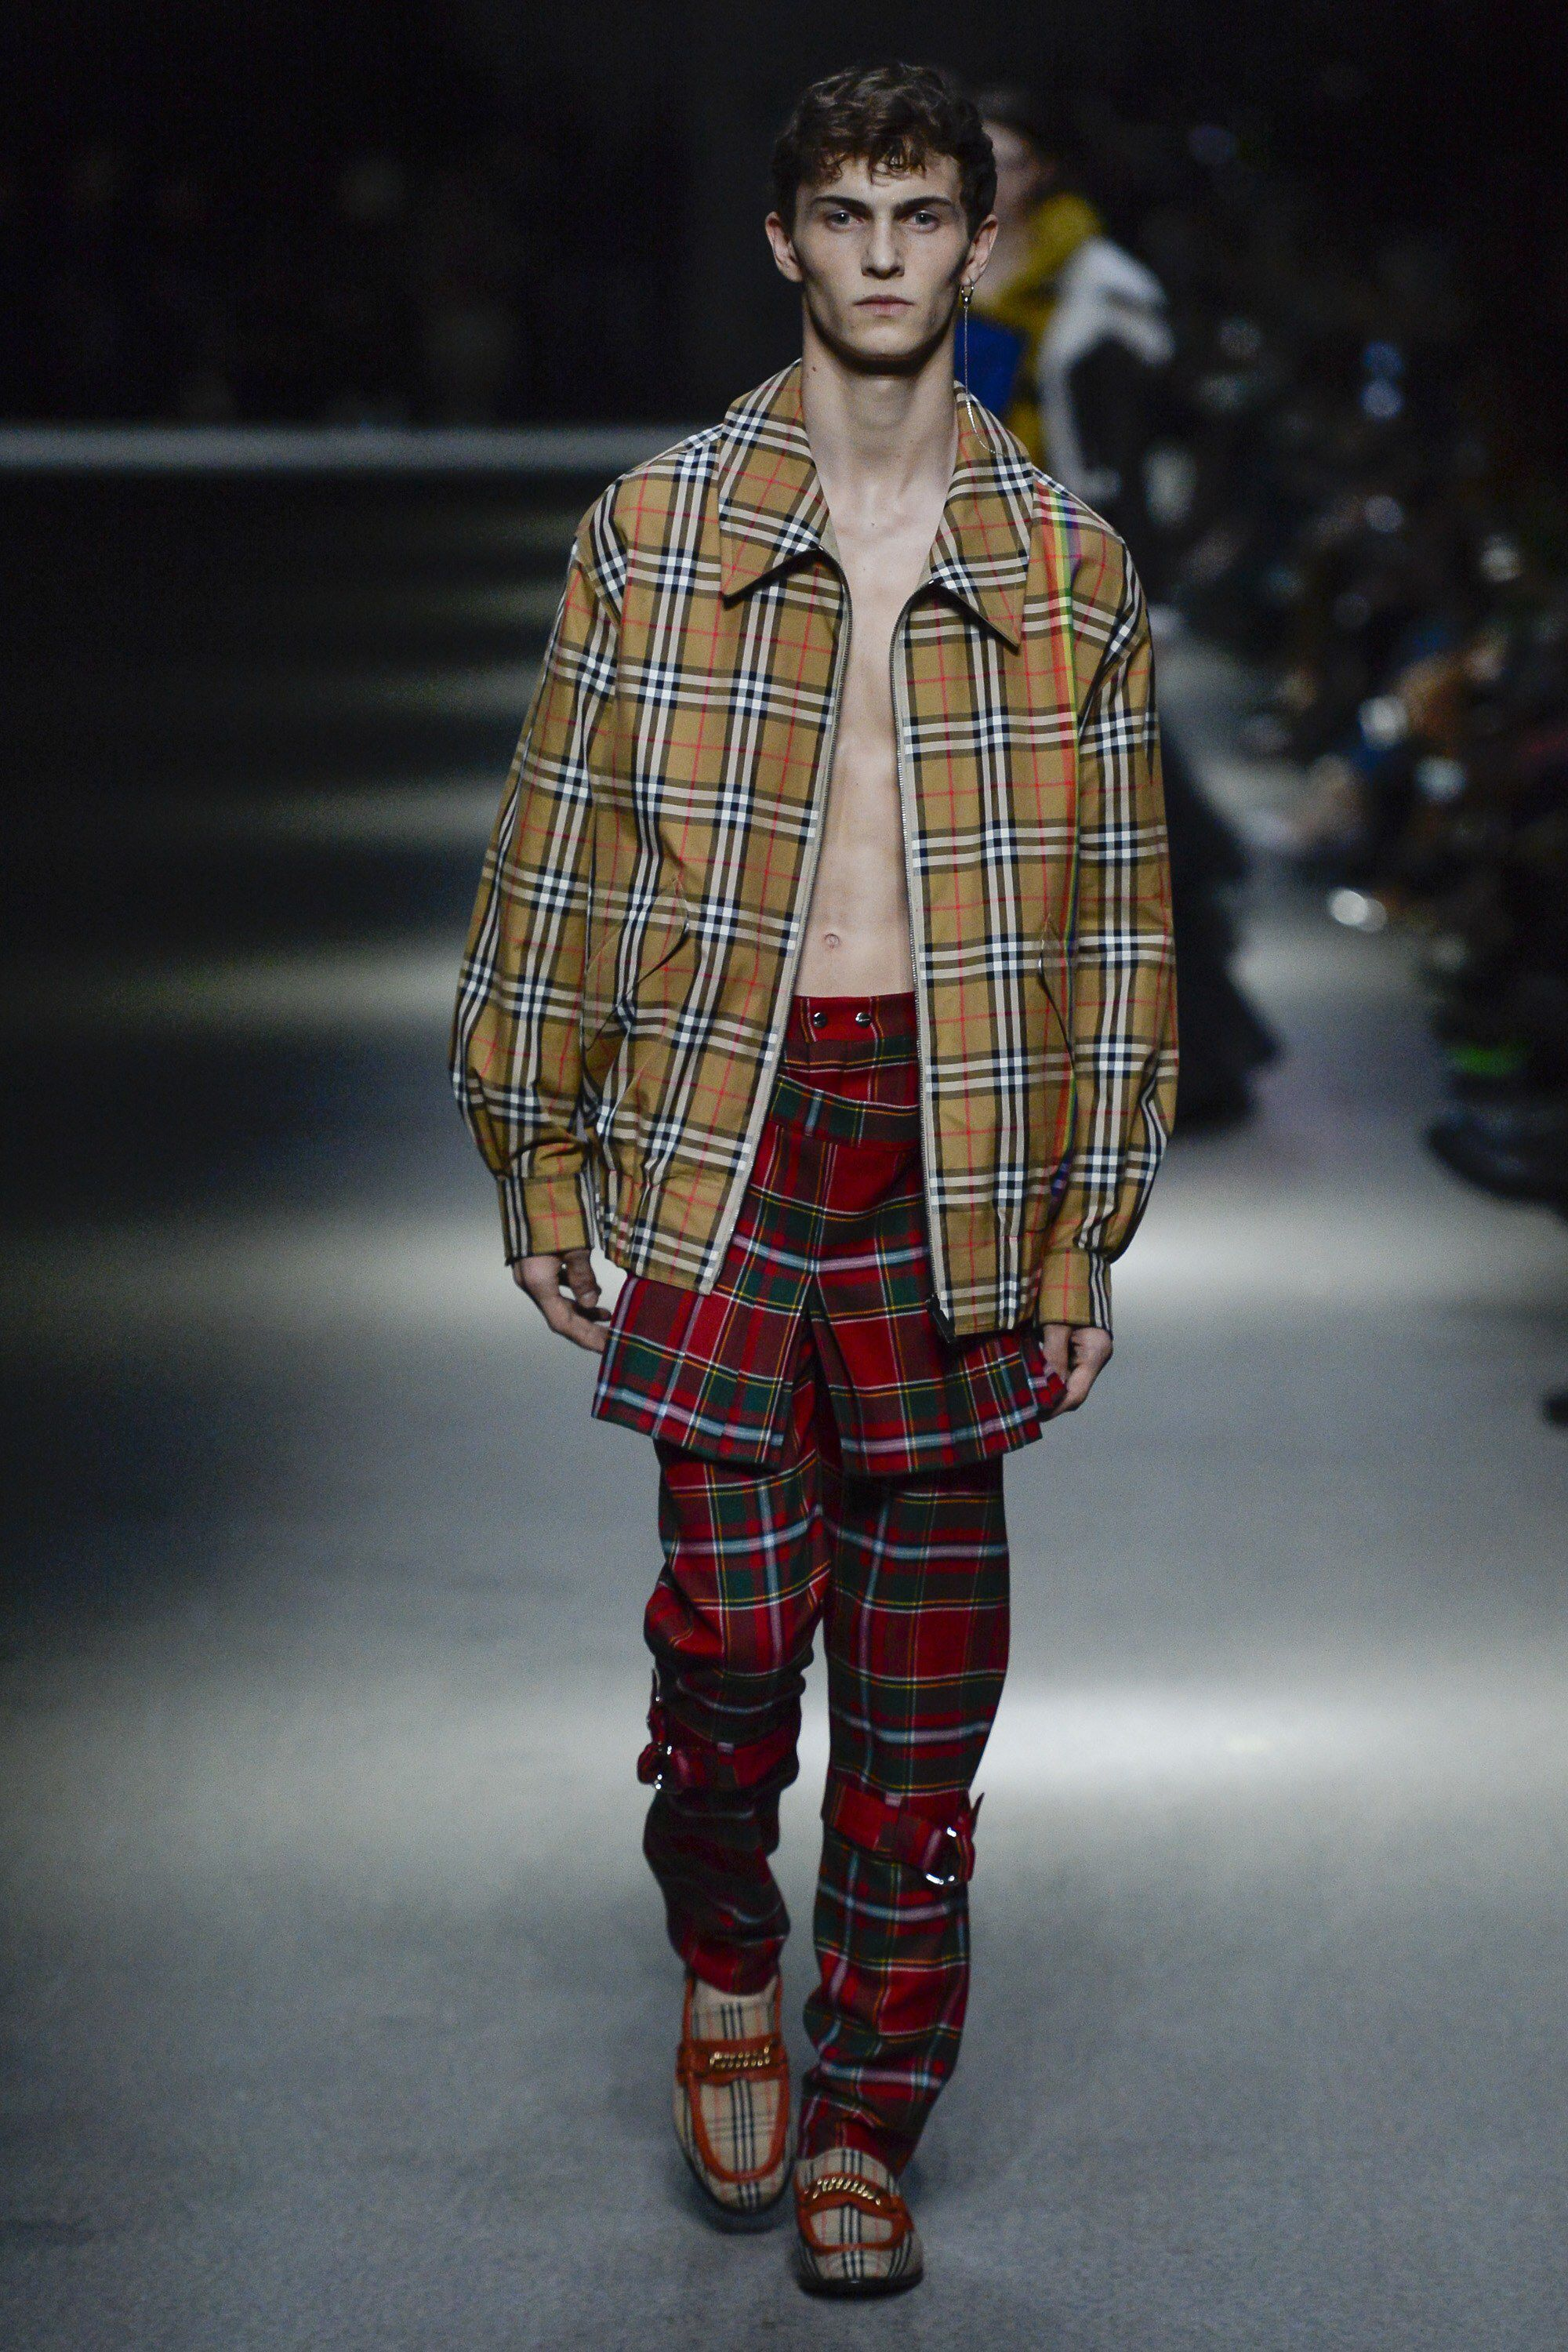 Burberry spring 2018 ready to wear fashion show collection 2018 2019 fall winter pinterest - Burberry fashion show ...